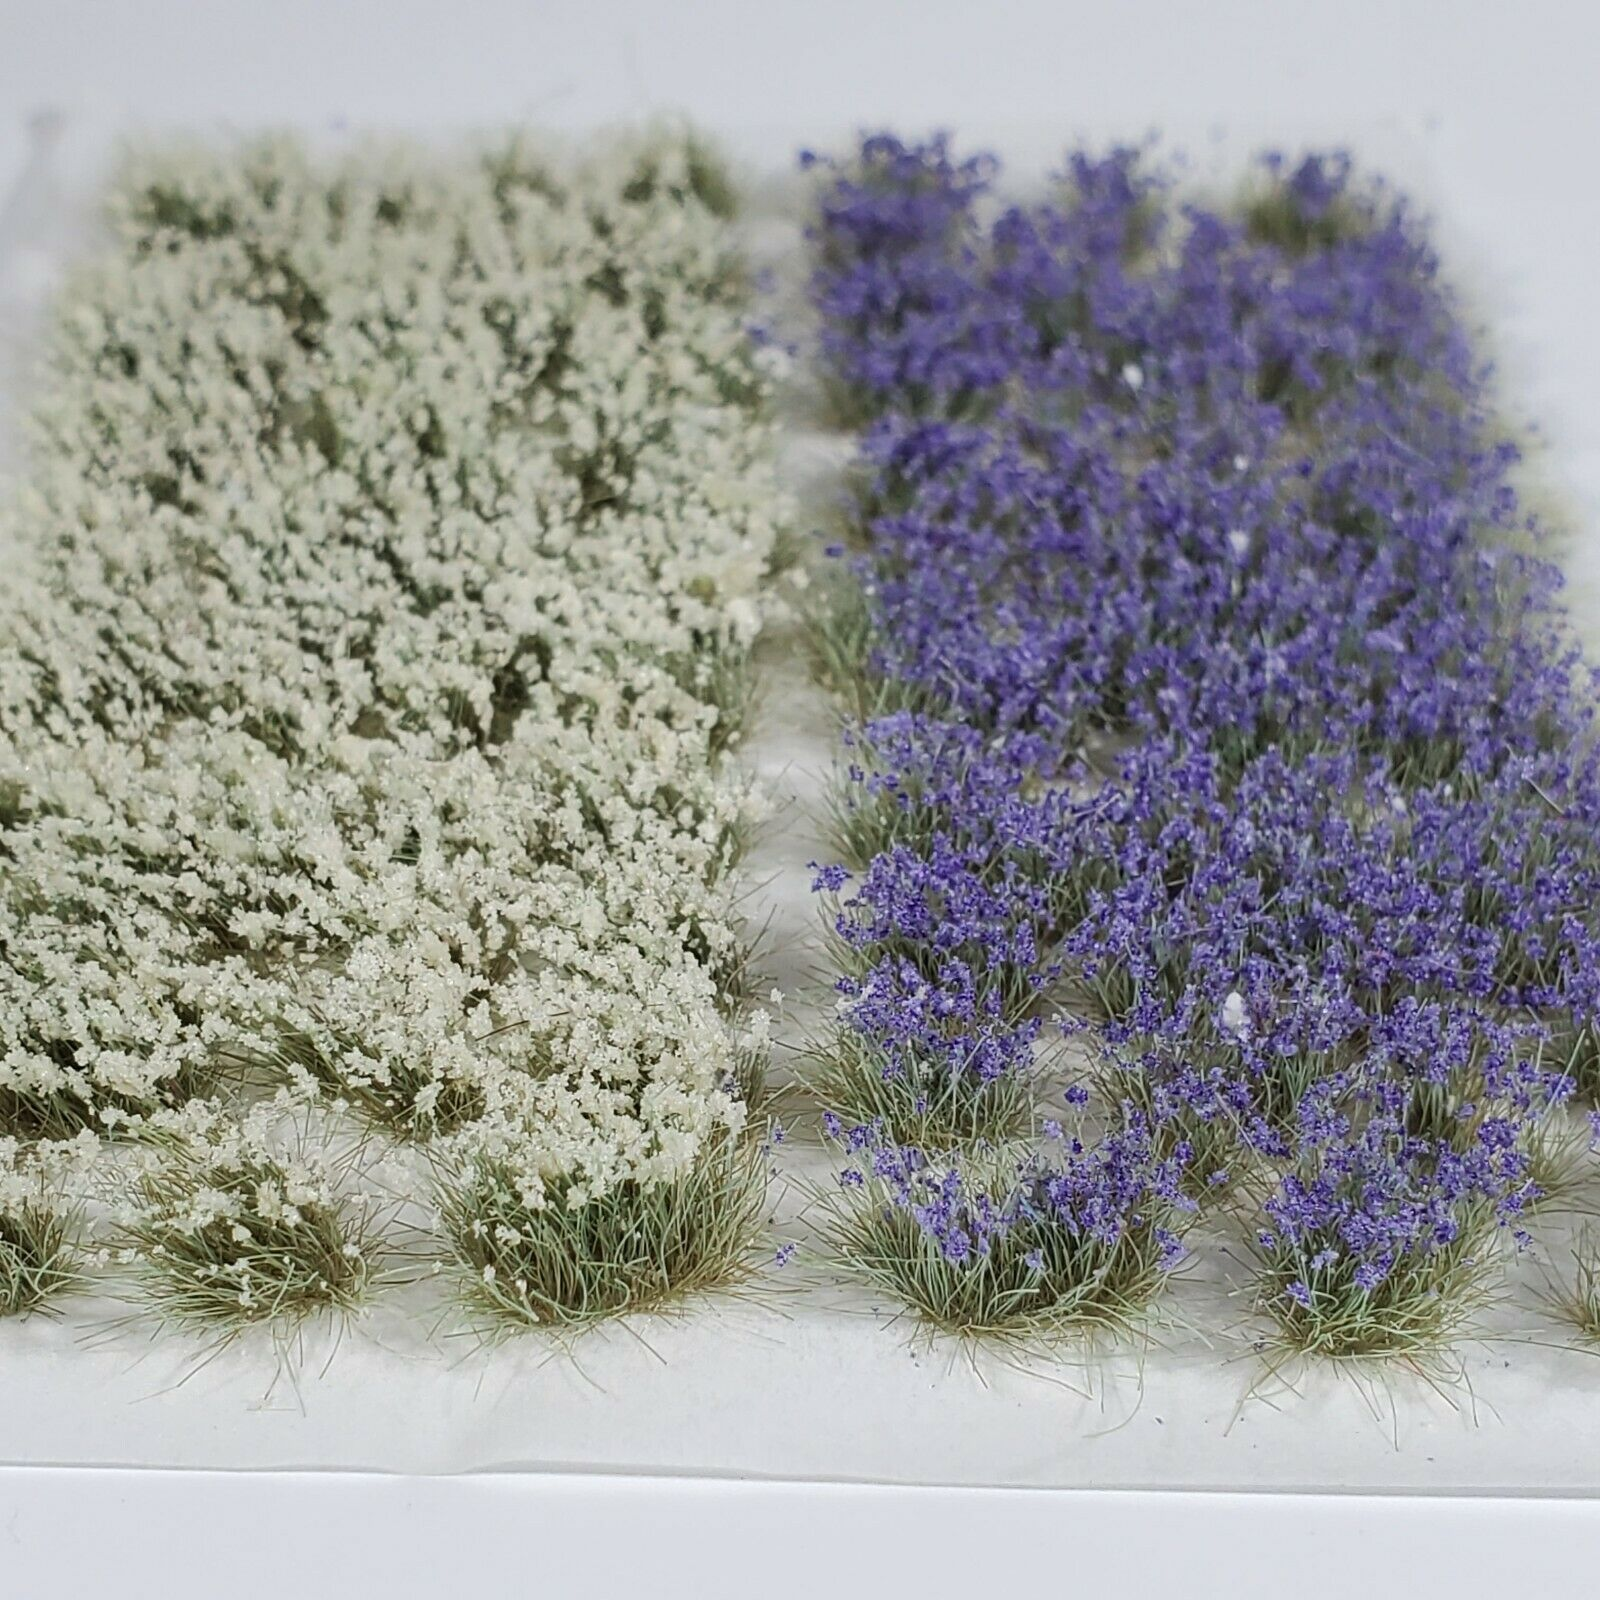 Self Adhesive Static Grass Tufts for Miniature Scenery -Violet/White Flowers-6mm